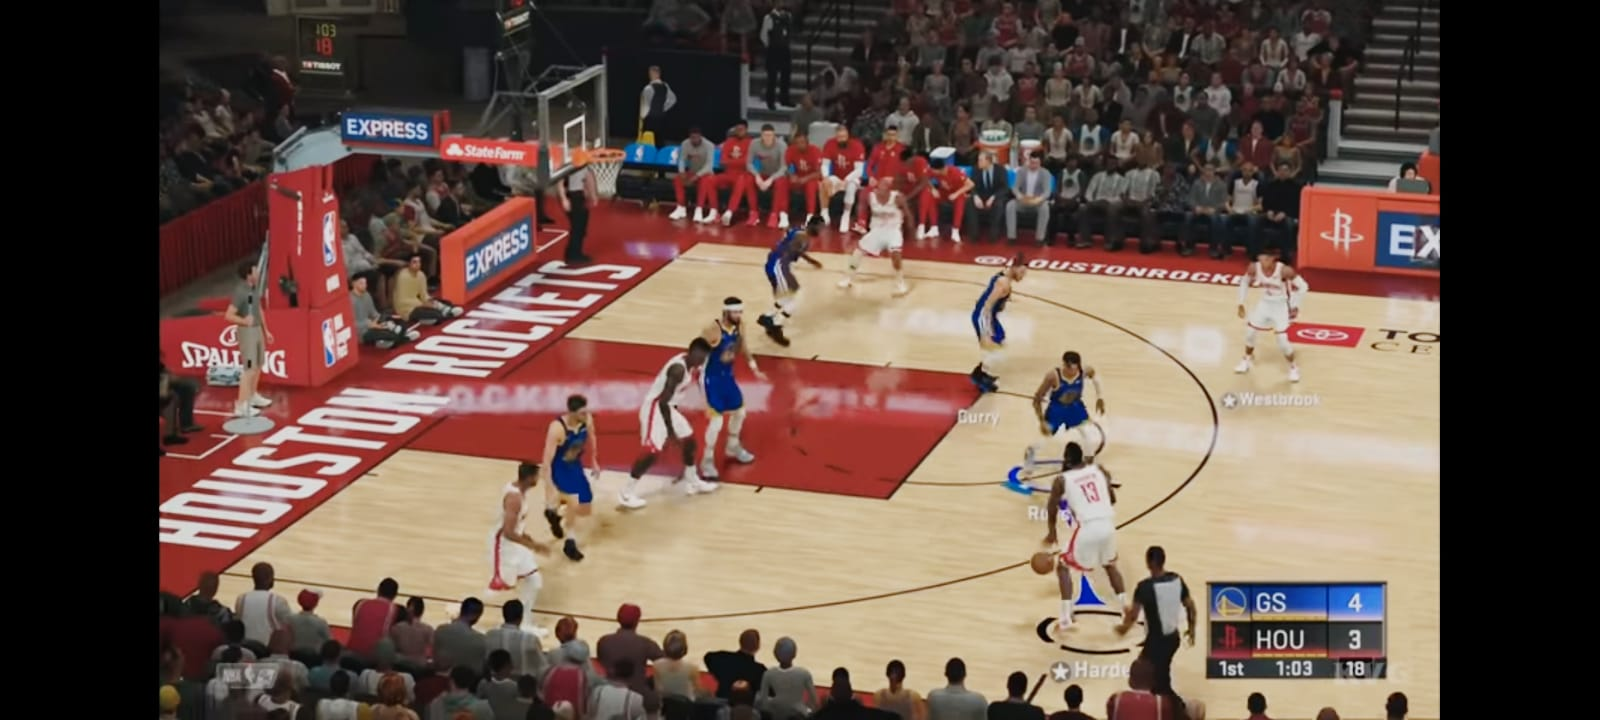 NBA 2k20 APK v98.0.2 Free Download For Android Latest 2021 2